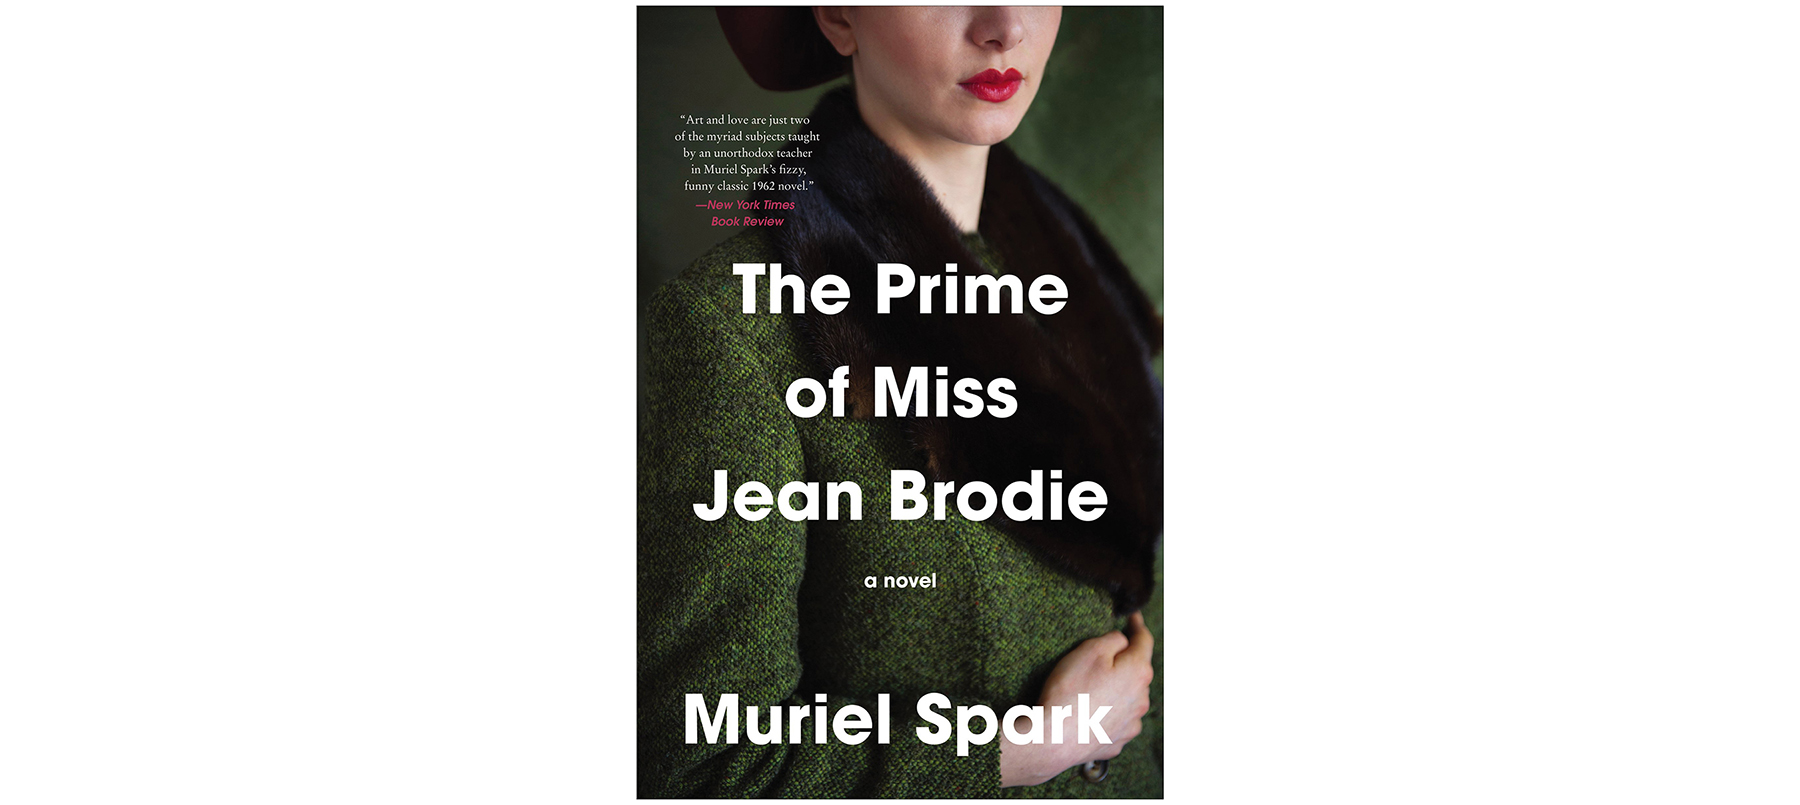 The Prime of Miss Jean Brodie, by Muriel Spark